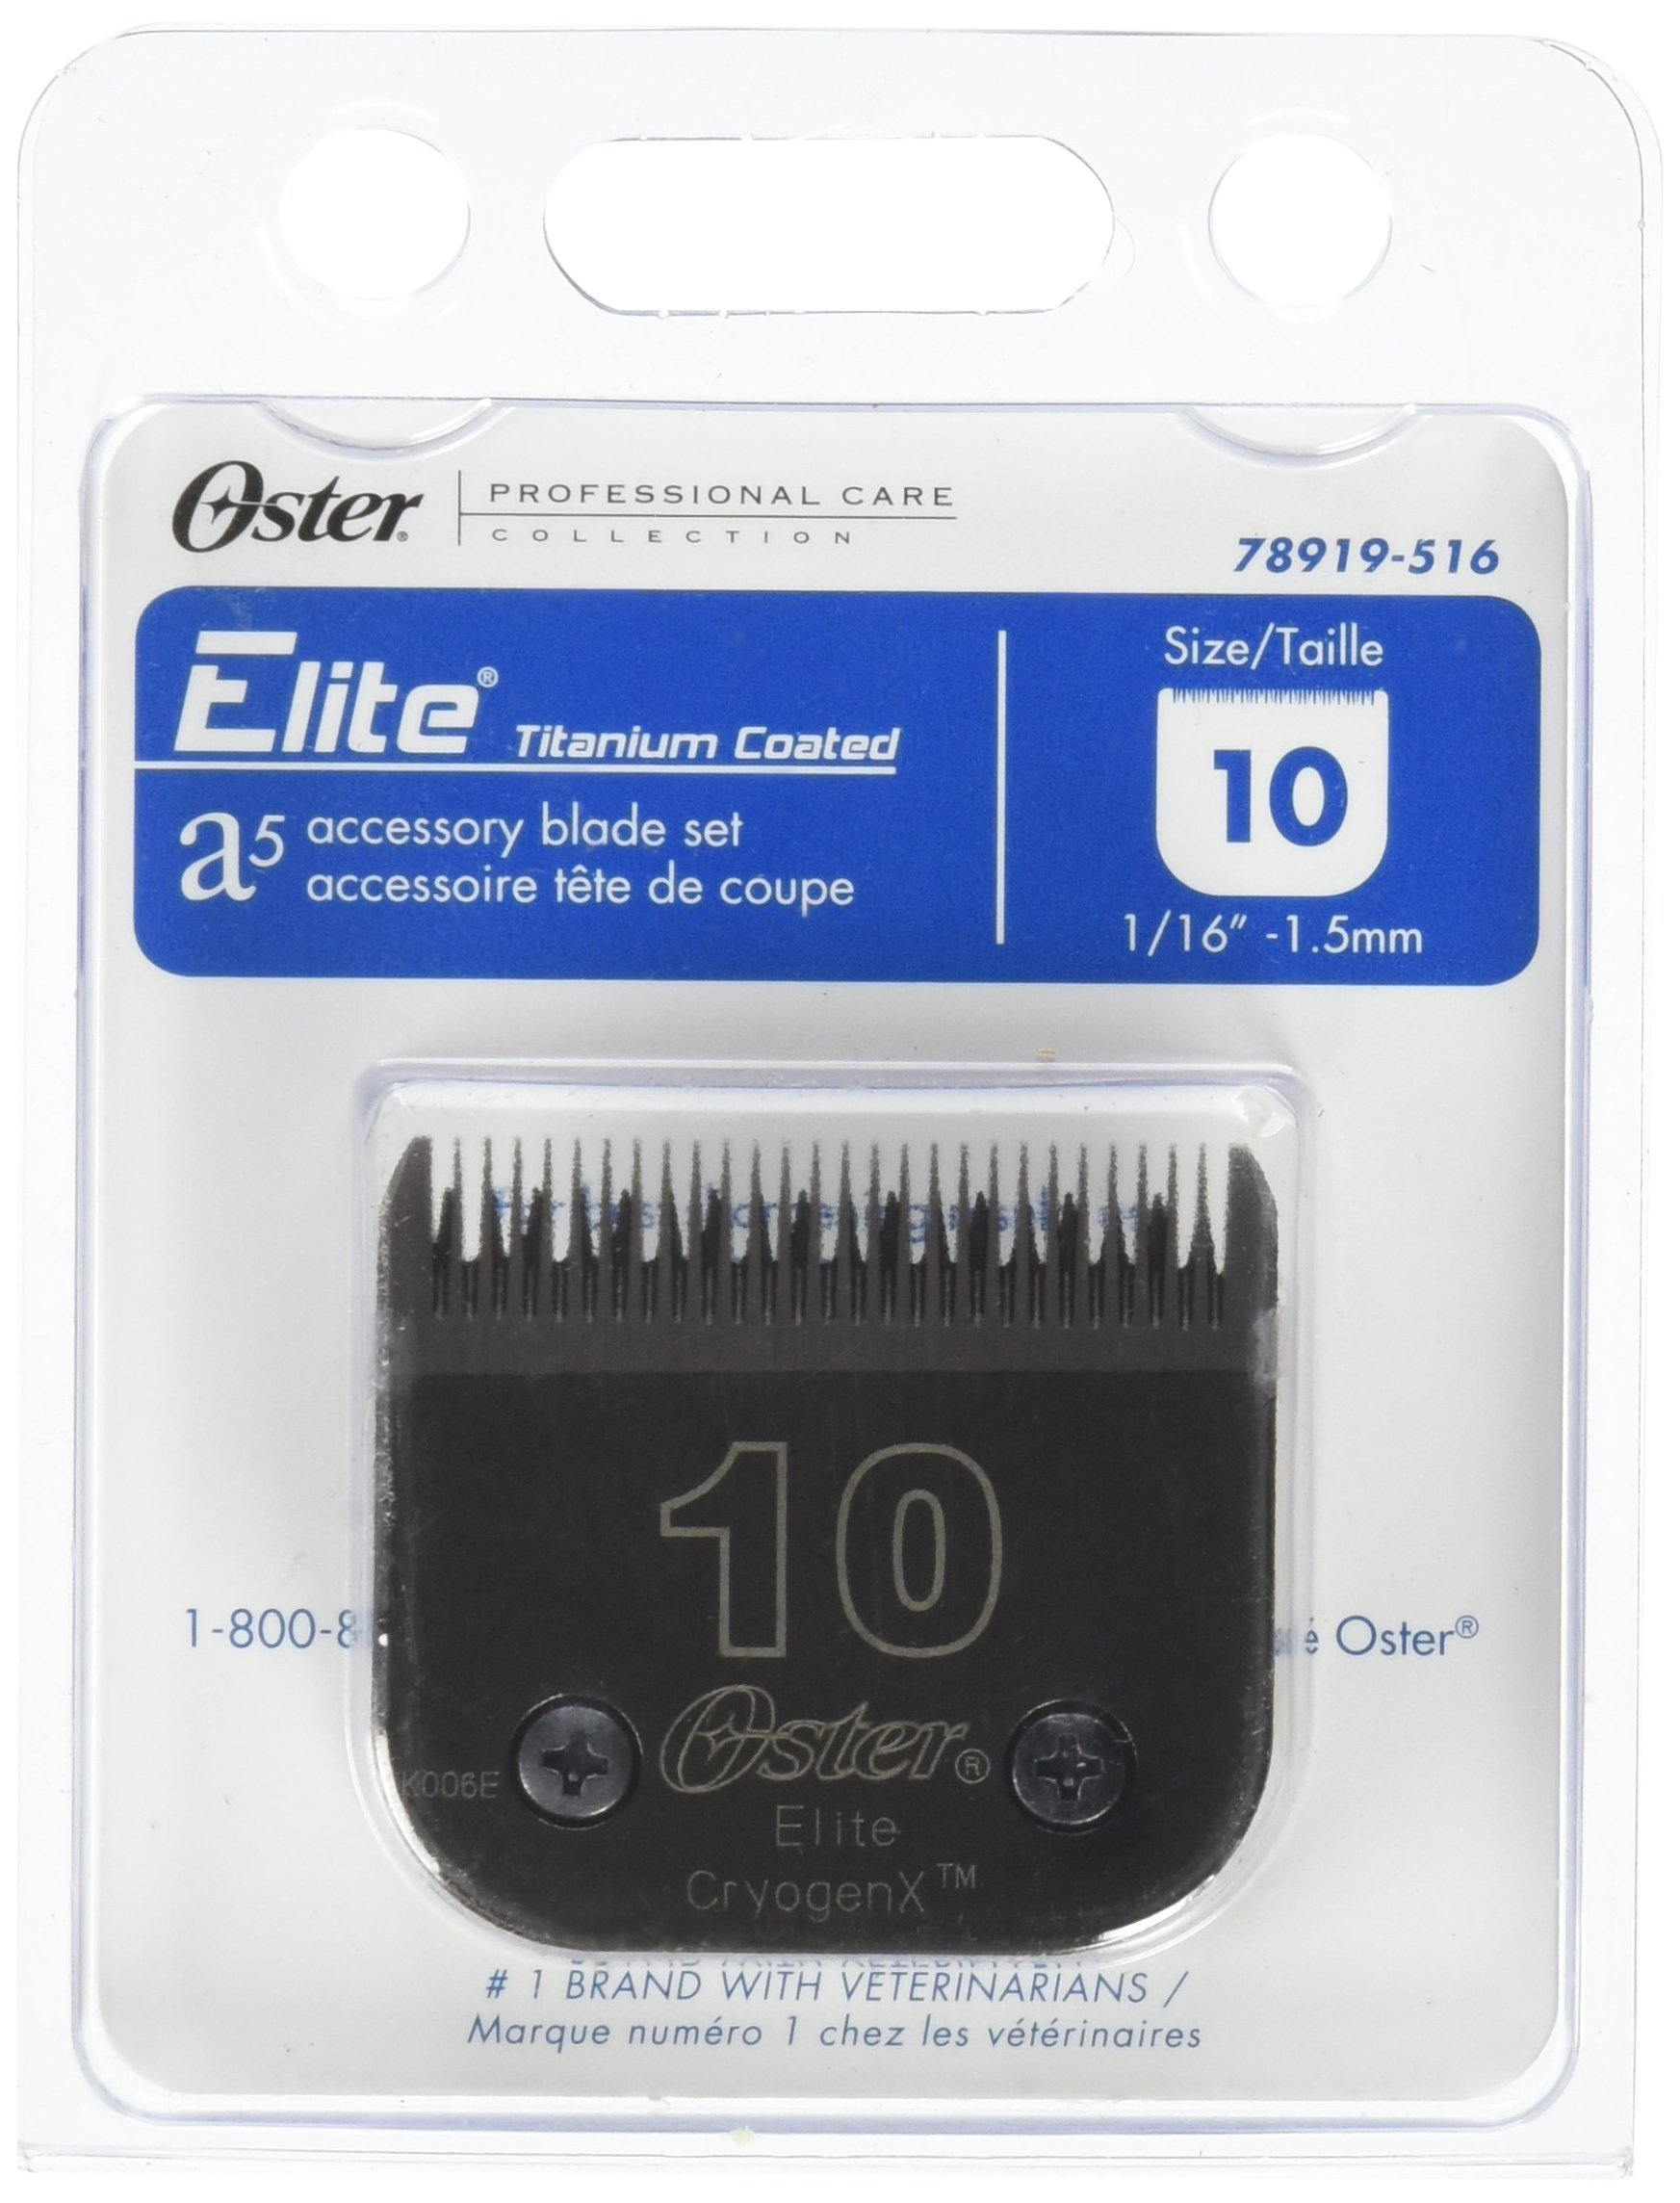 Oster Elite CryogenX Professional Animal Clipper Blade, Size 10 (078919-516-005) by Oster (Image #1)